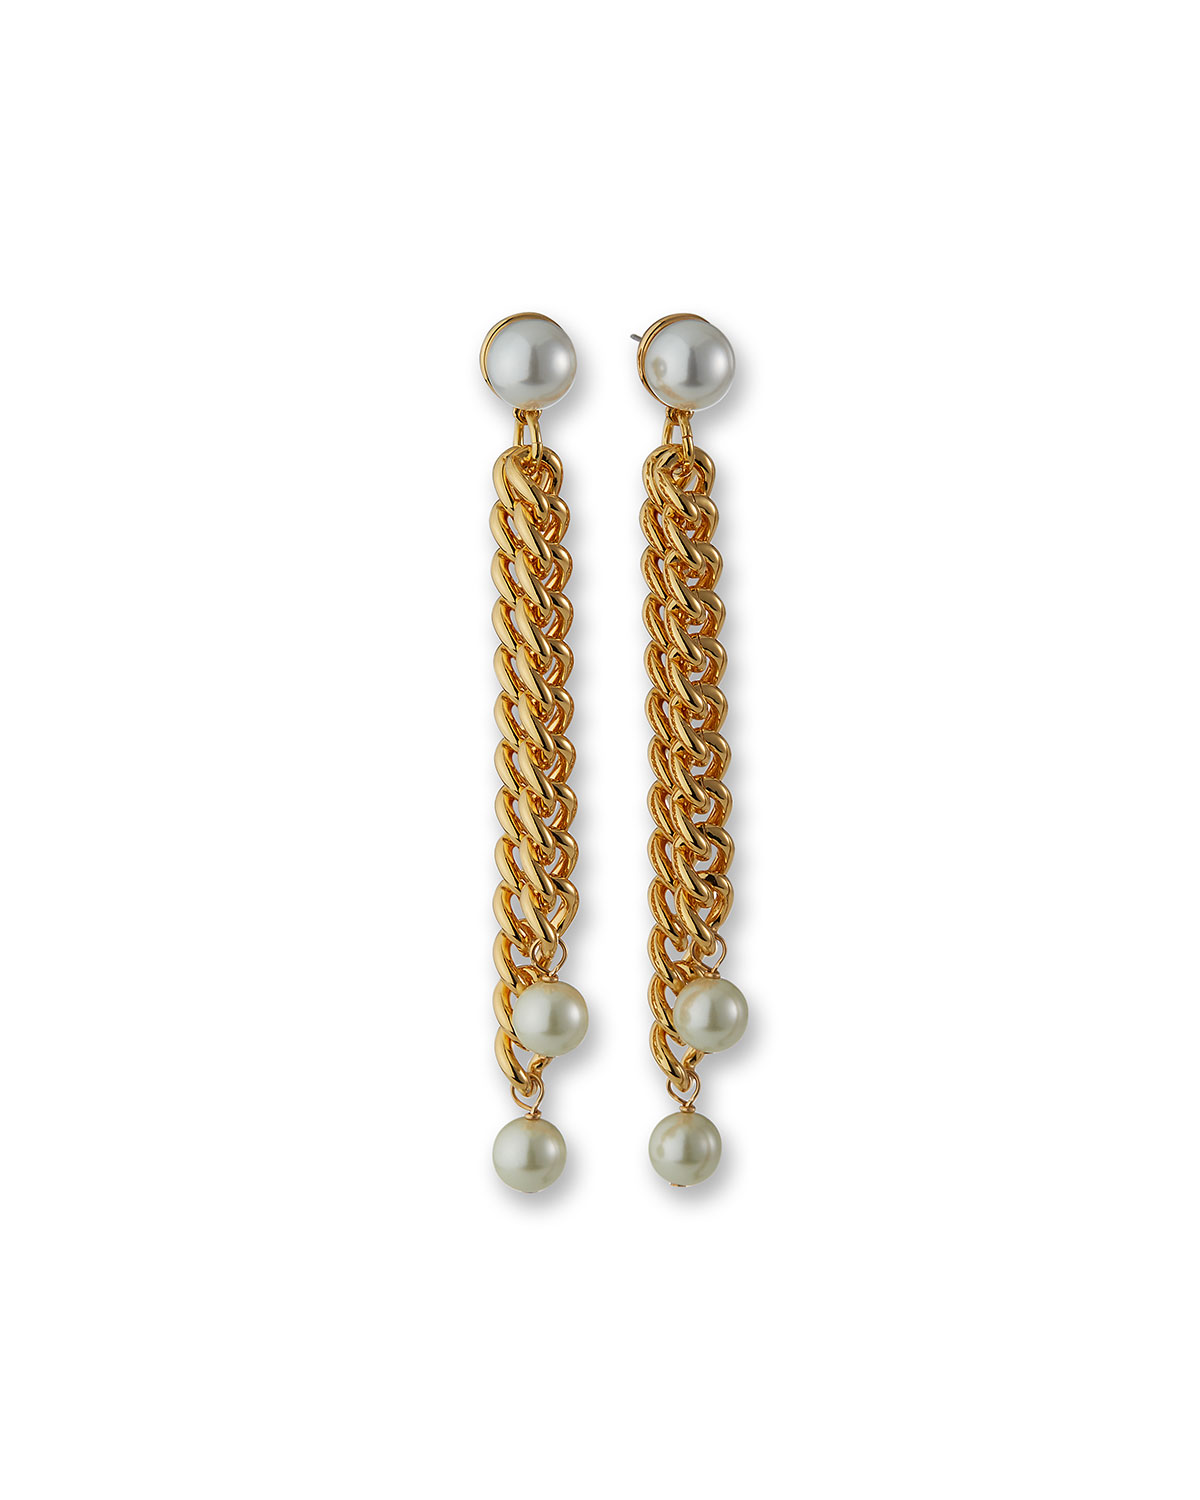 2-Row Chain Drop Earrings with Simulated Pearls